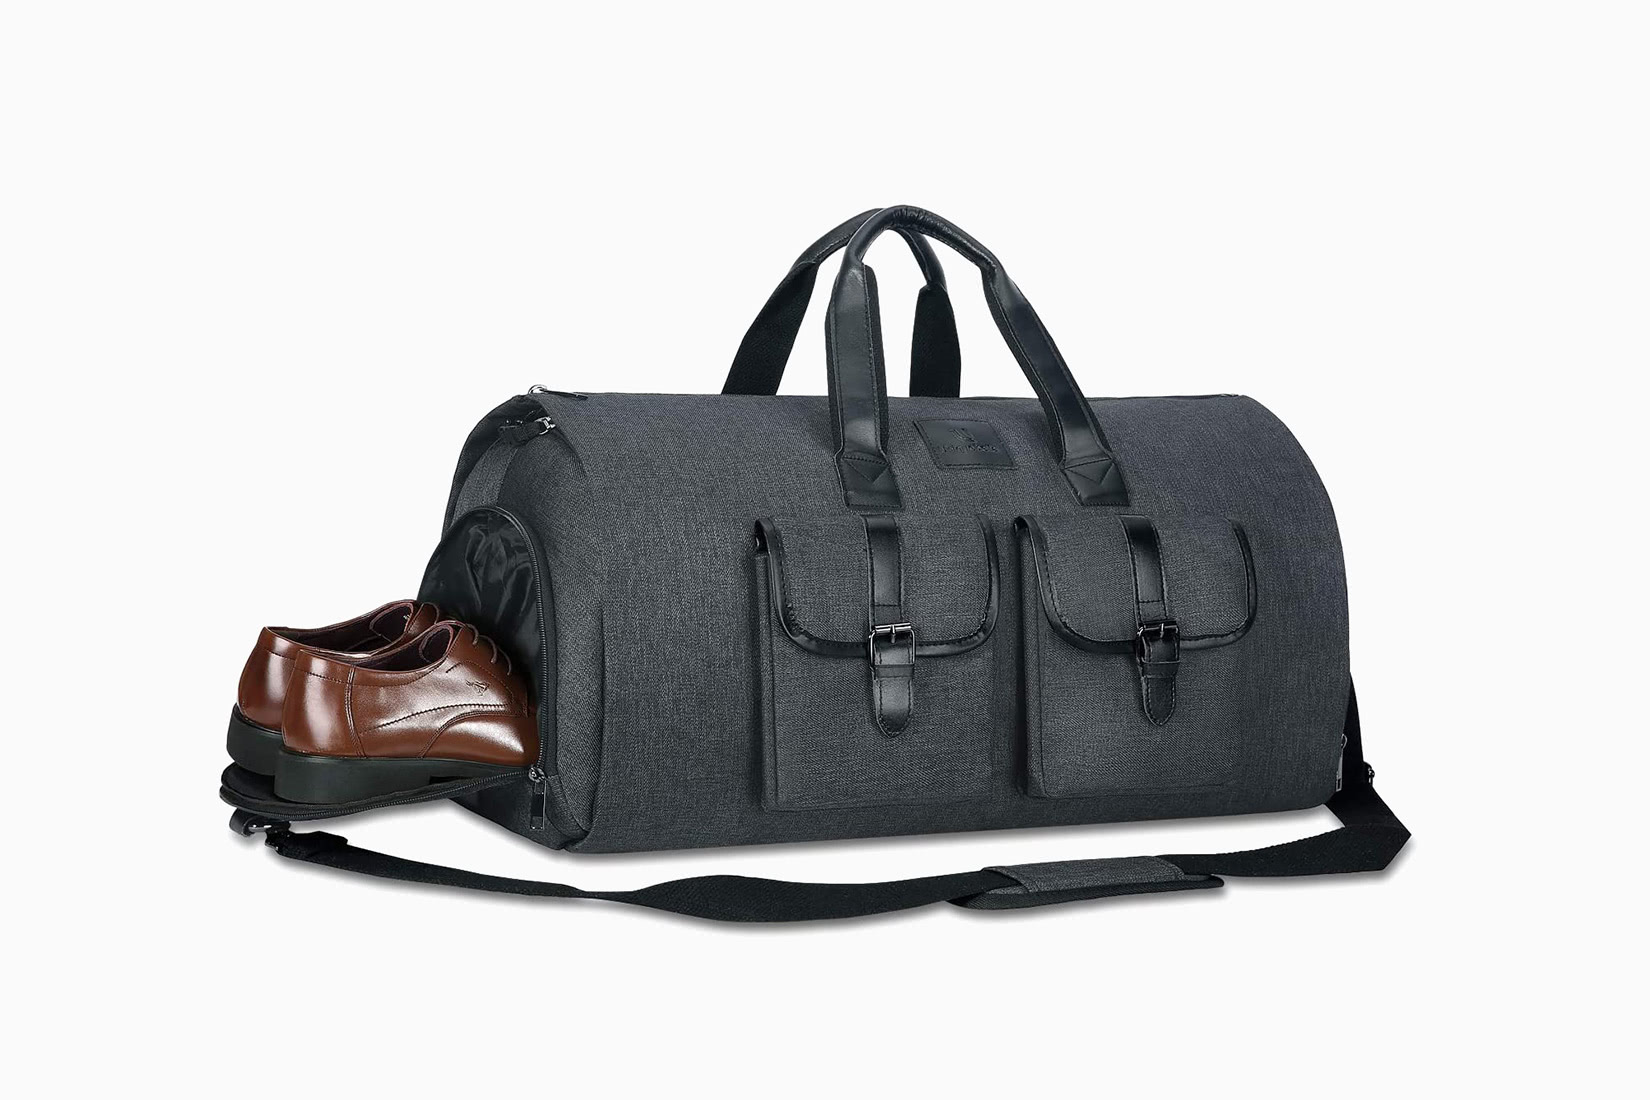 best garment bags duffel uniquebella review - Luxe Digital